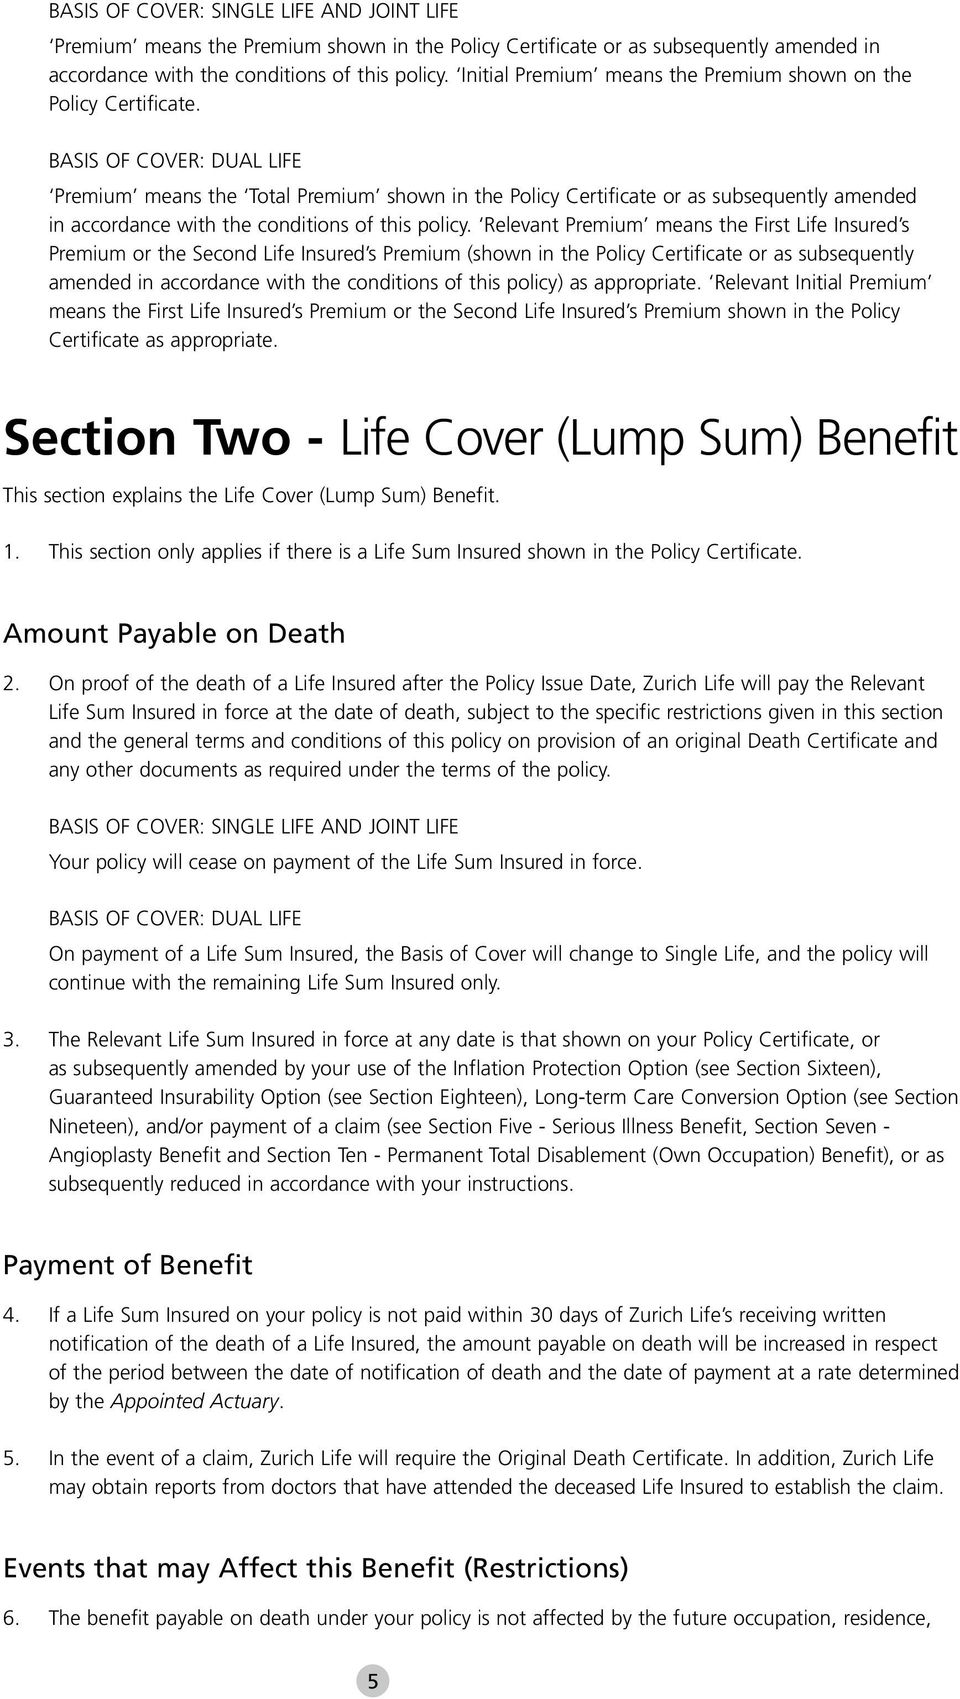 BASIS OF COVER: DUAL LIFE Premium means the Total Premium shown in the Policy Certificate or as subsequently amended in accordance with the conditions of this policy.